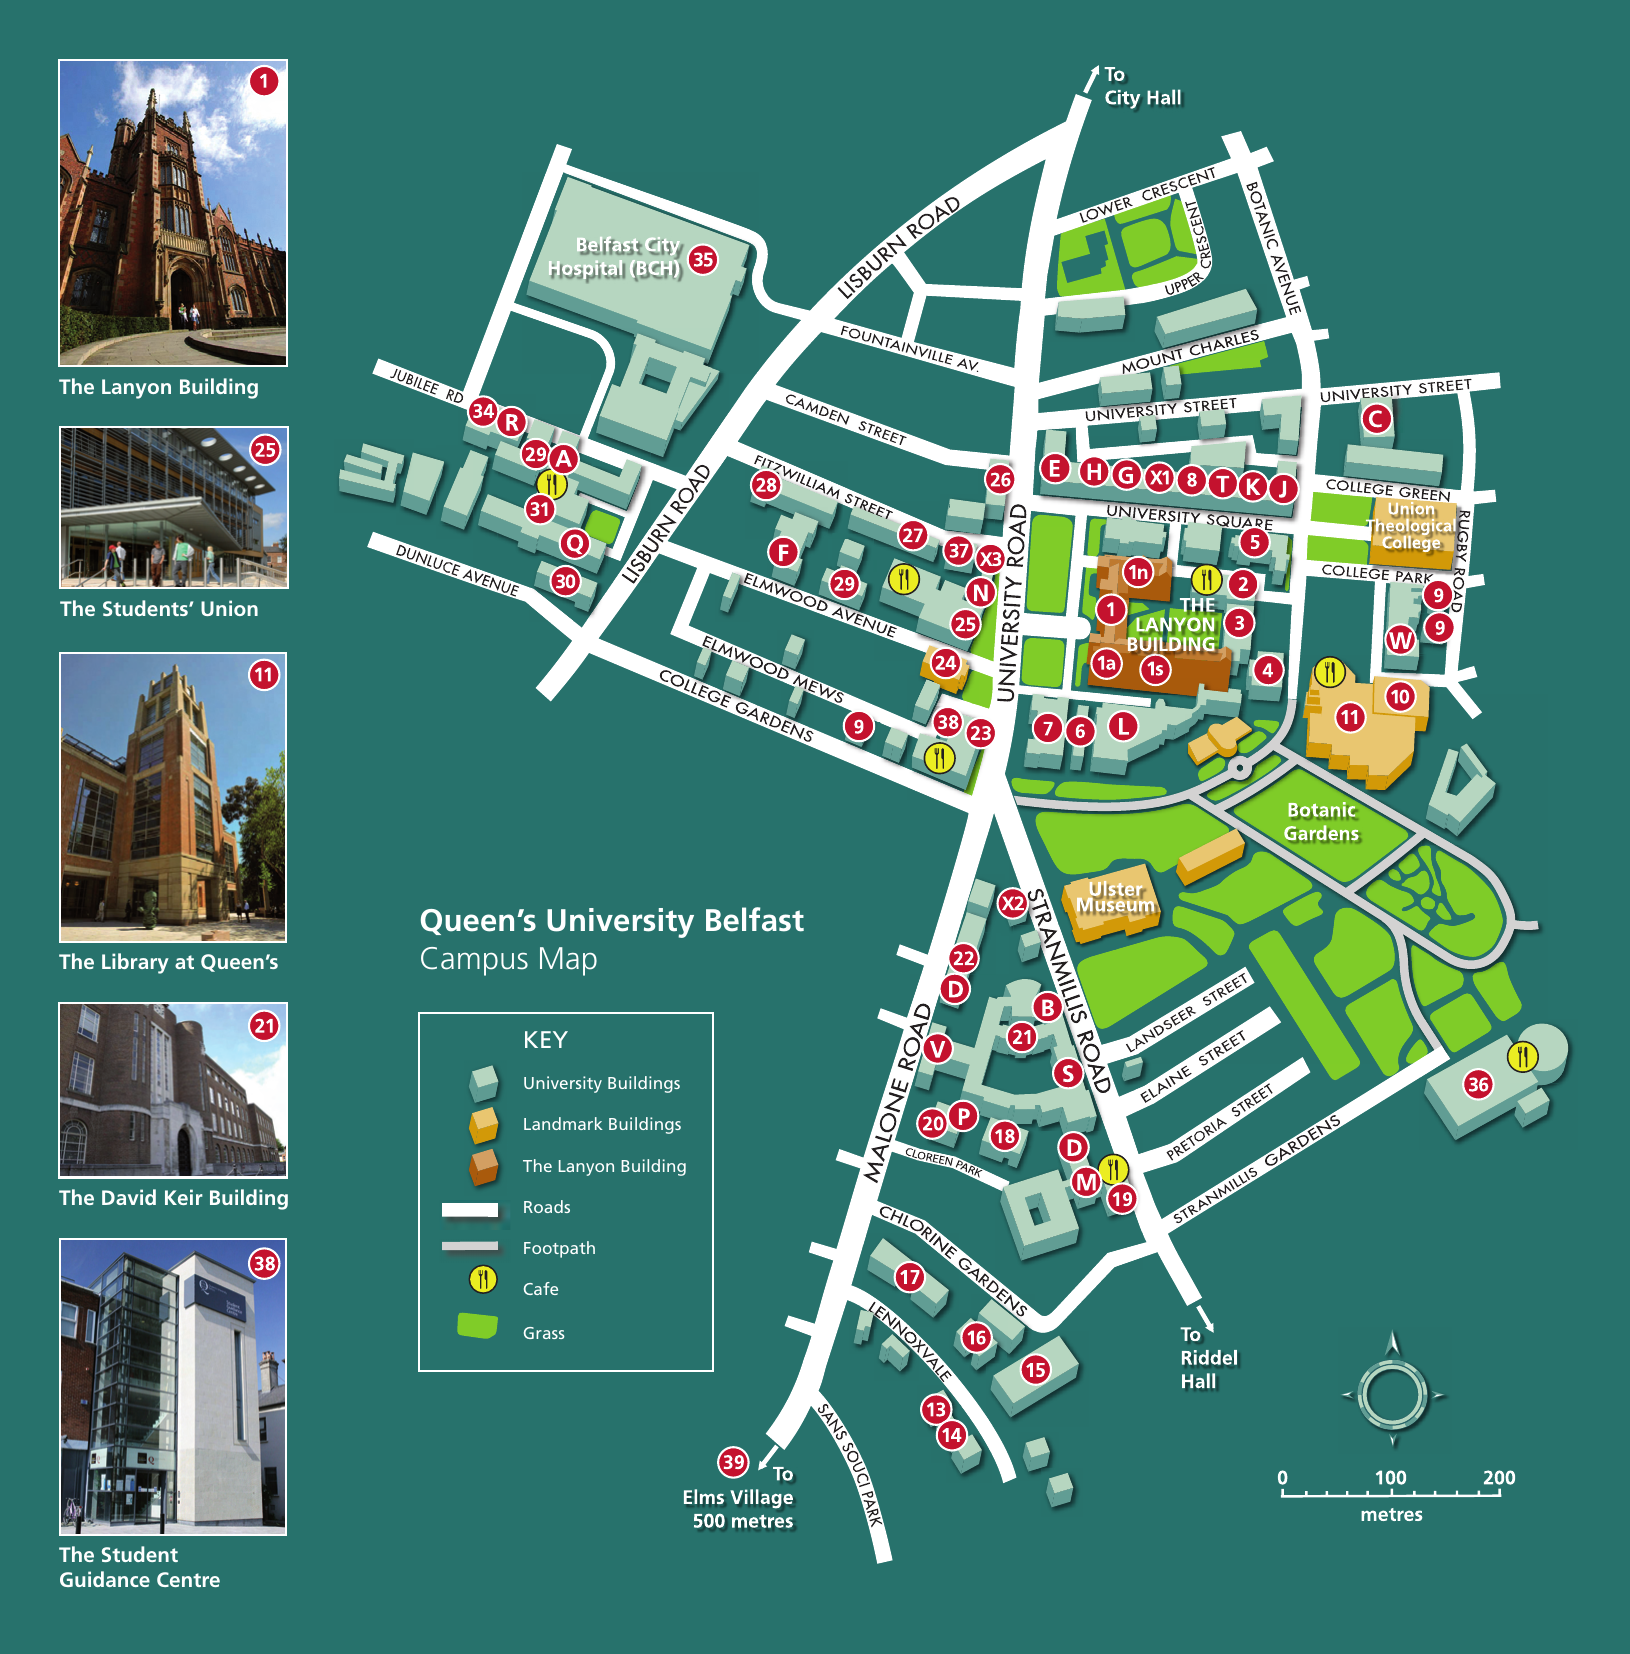 queens university of charlotte campus map Queen S University Belfast Campus Map queens university of charlotte campus map